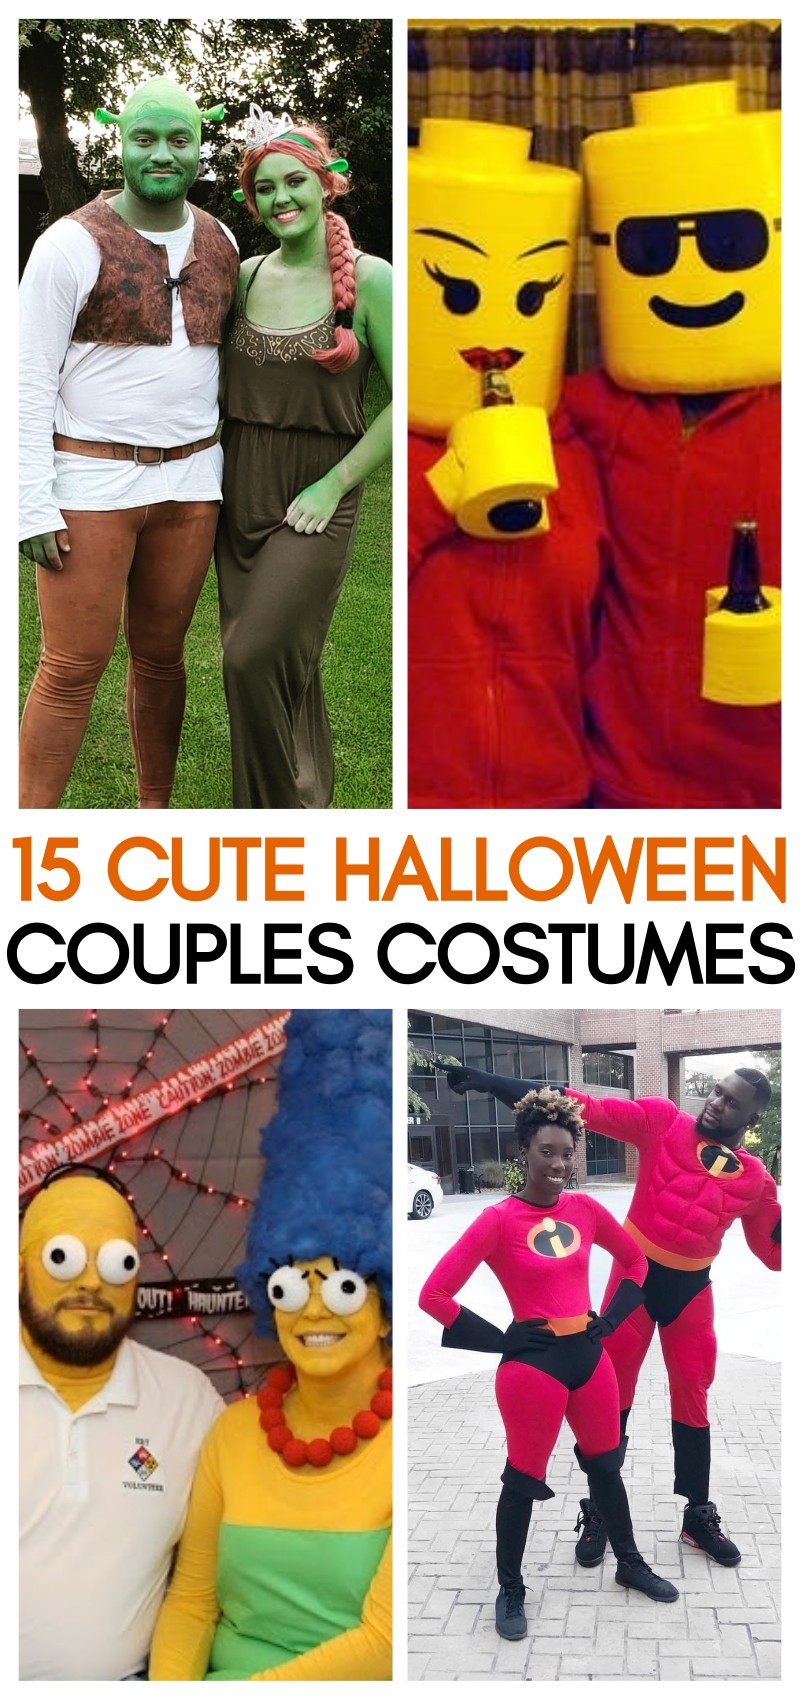 15 Cute Couples Costumes for Halloween Ideas - Some of These Are Brilliant | best couples costumes | halloween costume ideas for couples | creative couples costumes | halloween couples costume ideas | honeyandlime.co